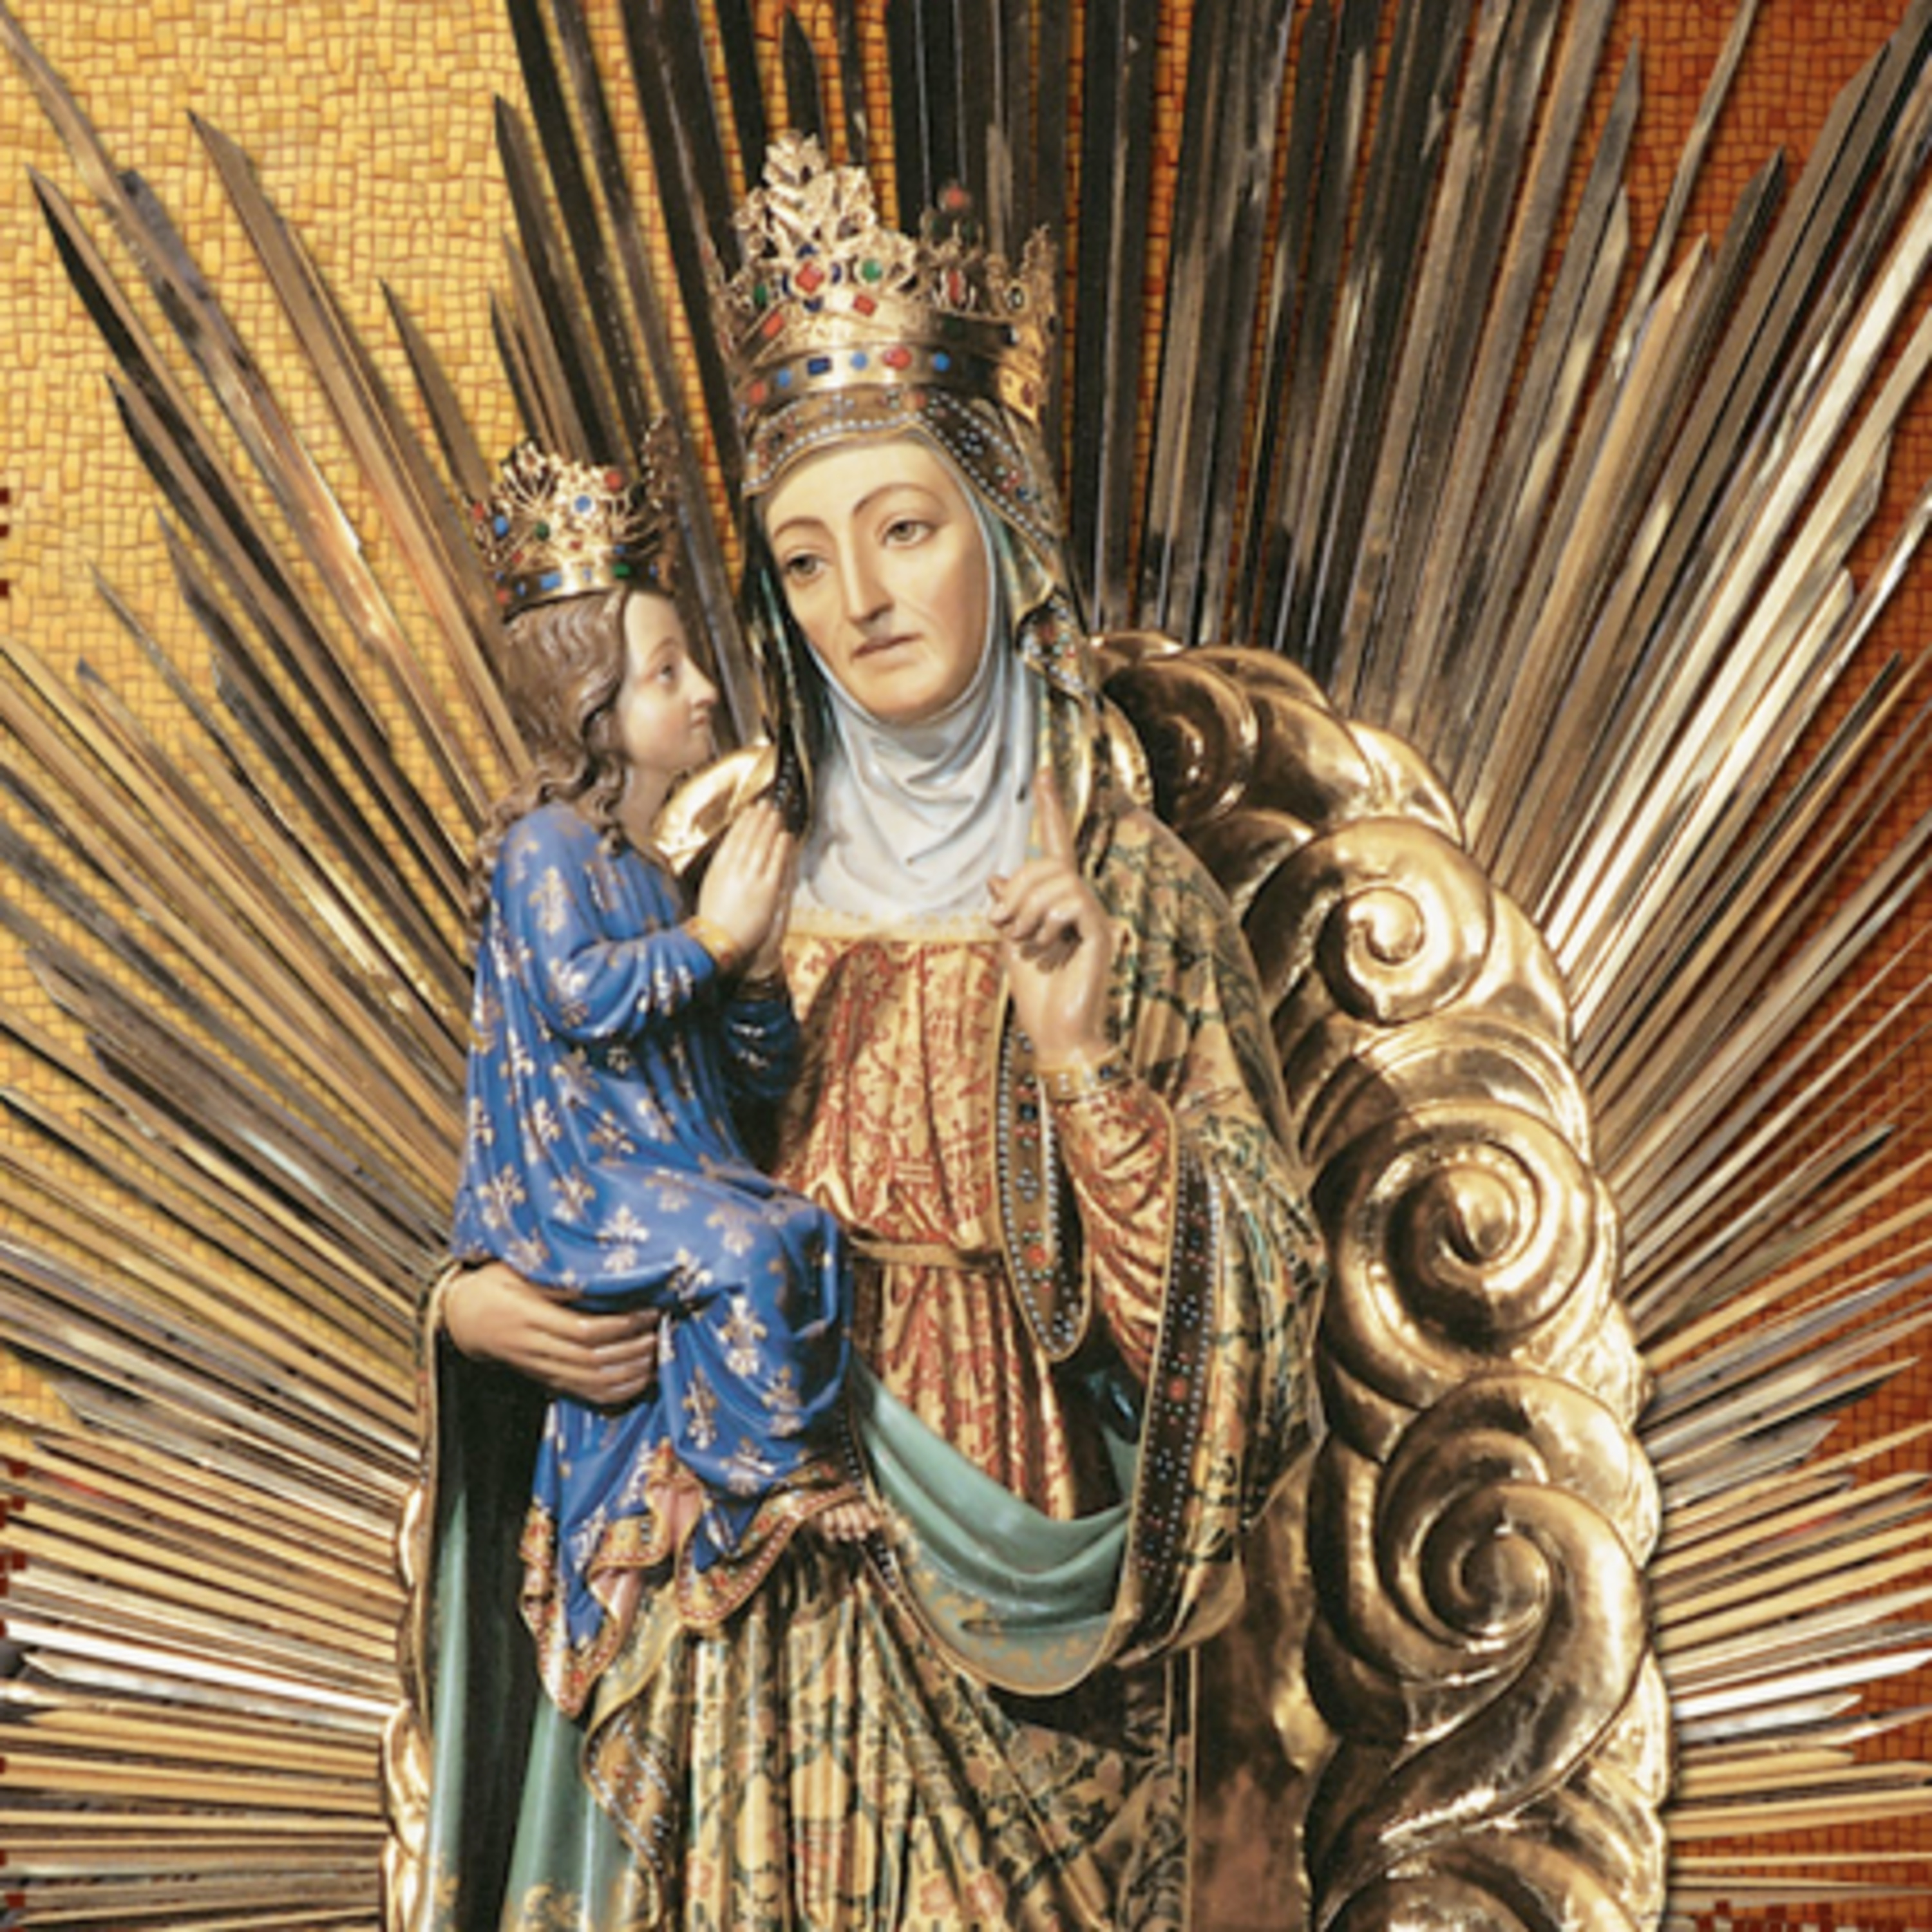 Feast of St. Anne, being sons and daughters in the Son